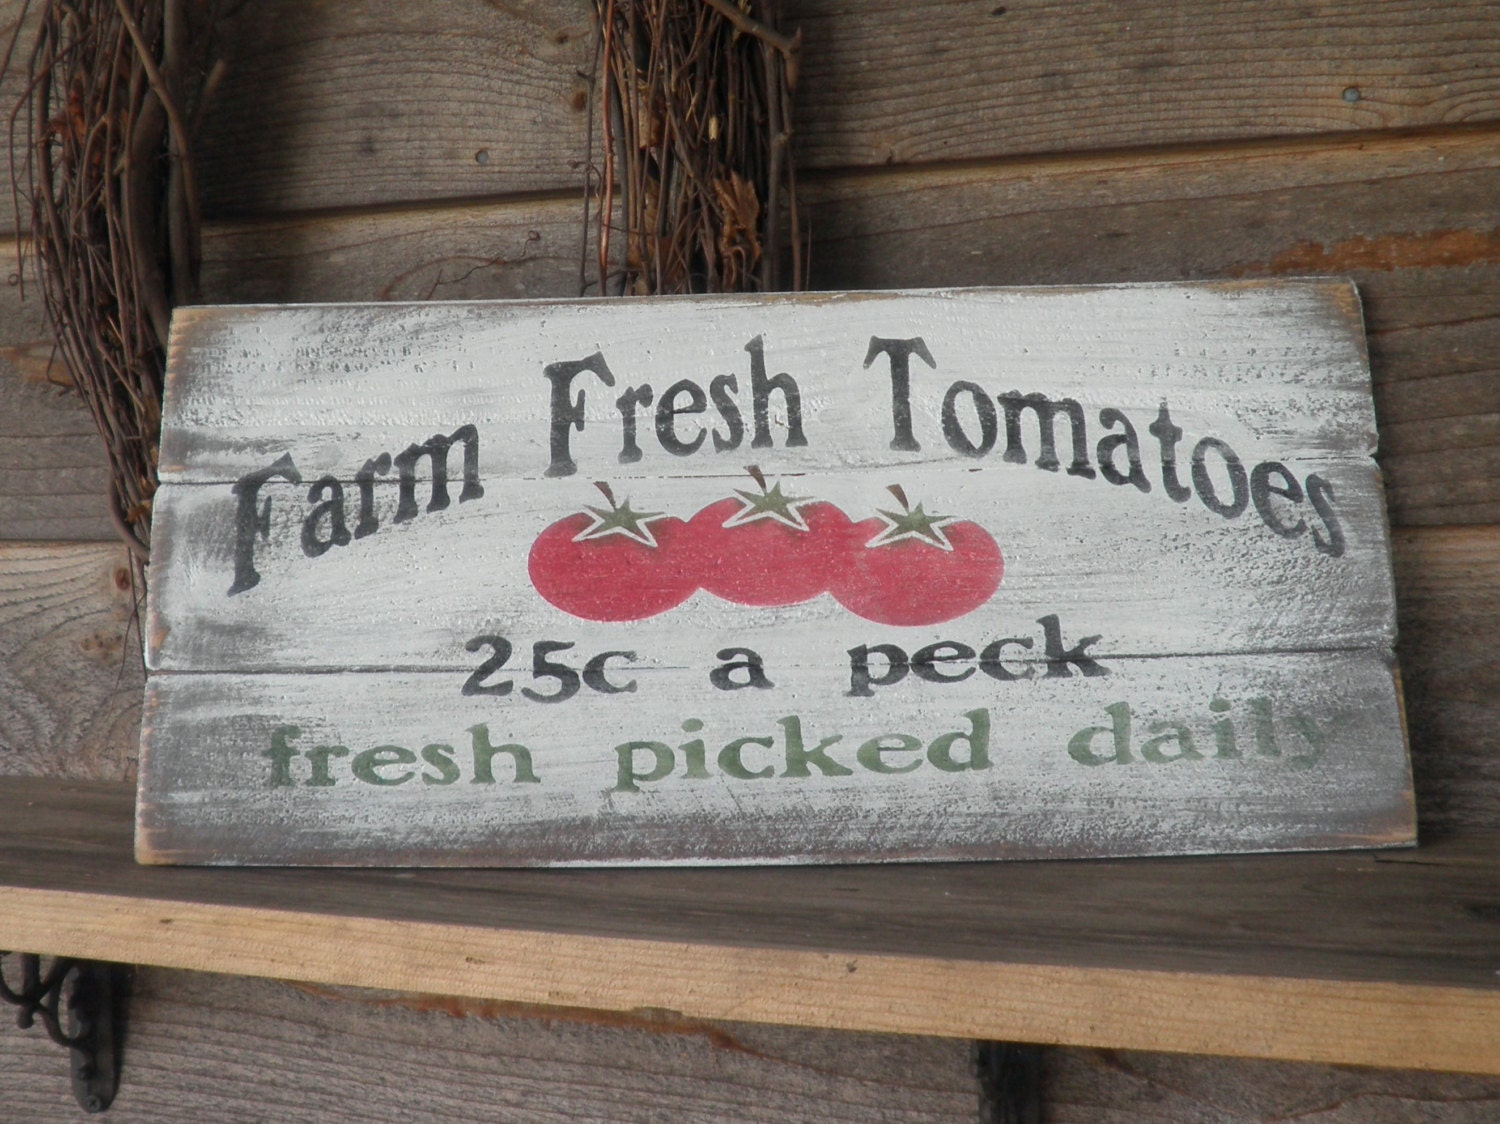 Primitive Country Decor Kitchen Sign Farm Fresh Tomatoes. Coastal Wall Decor. Macys Dining Room. Decorative Switchplates And Outlet Covers. Italian Themed Party Decorations. Dining Room Chair Reupholstery Cost. Red Decorative Pillow. Dorm Room Bunk Beds. Room Scheduler